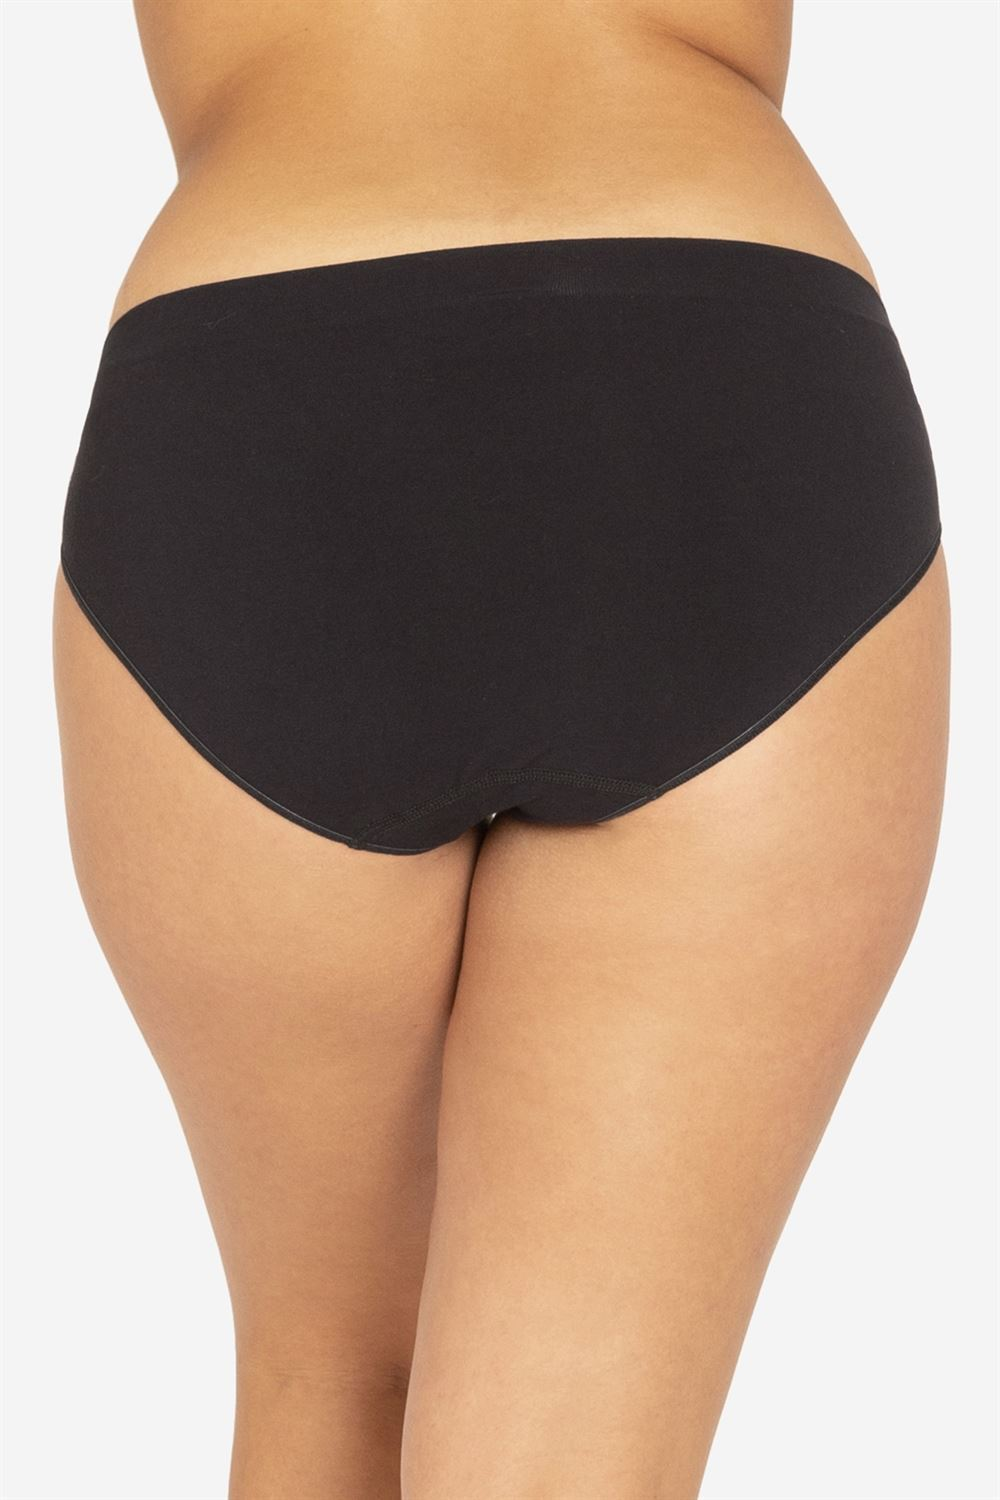 Black maternity panties in soft Organic bamboo fibres - Seen from behind